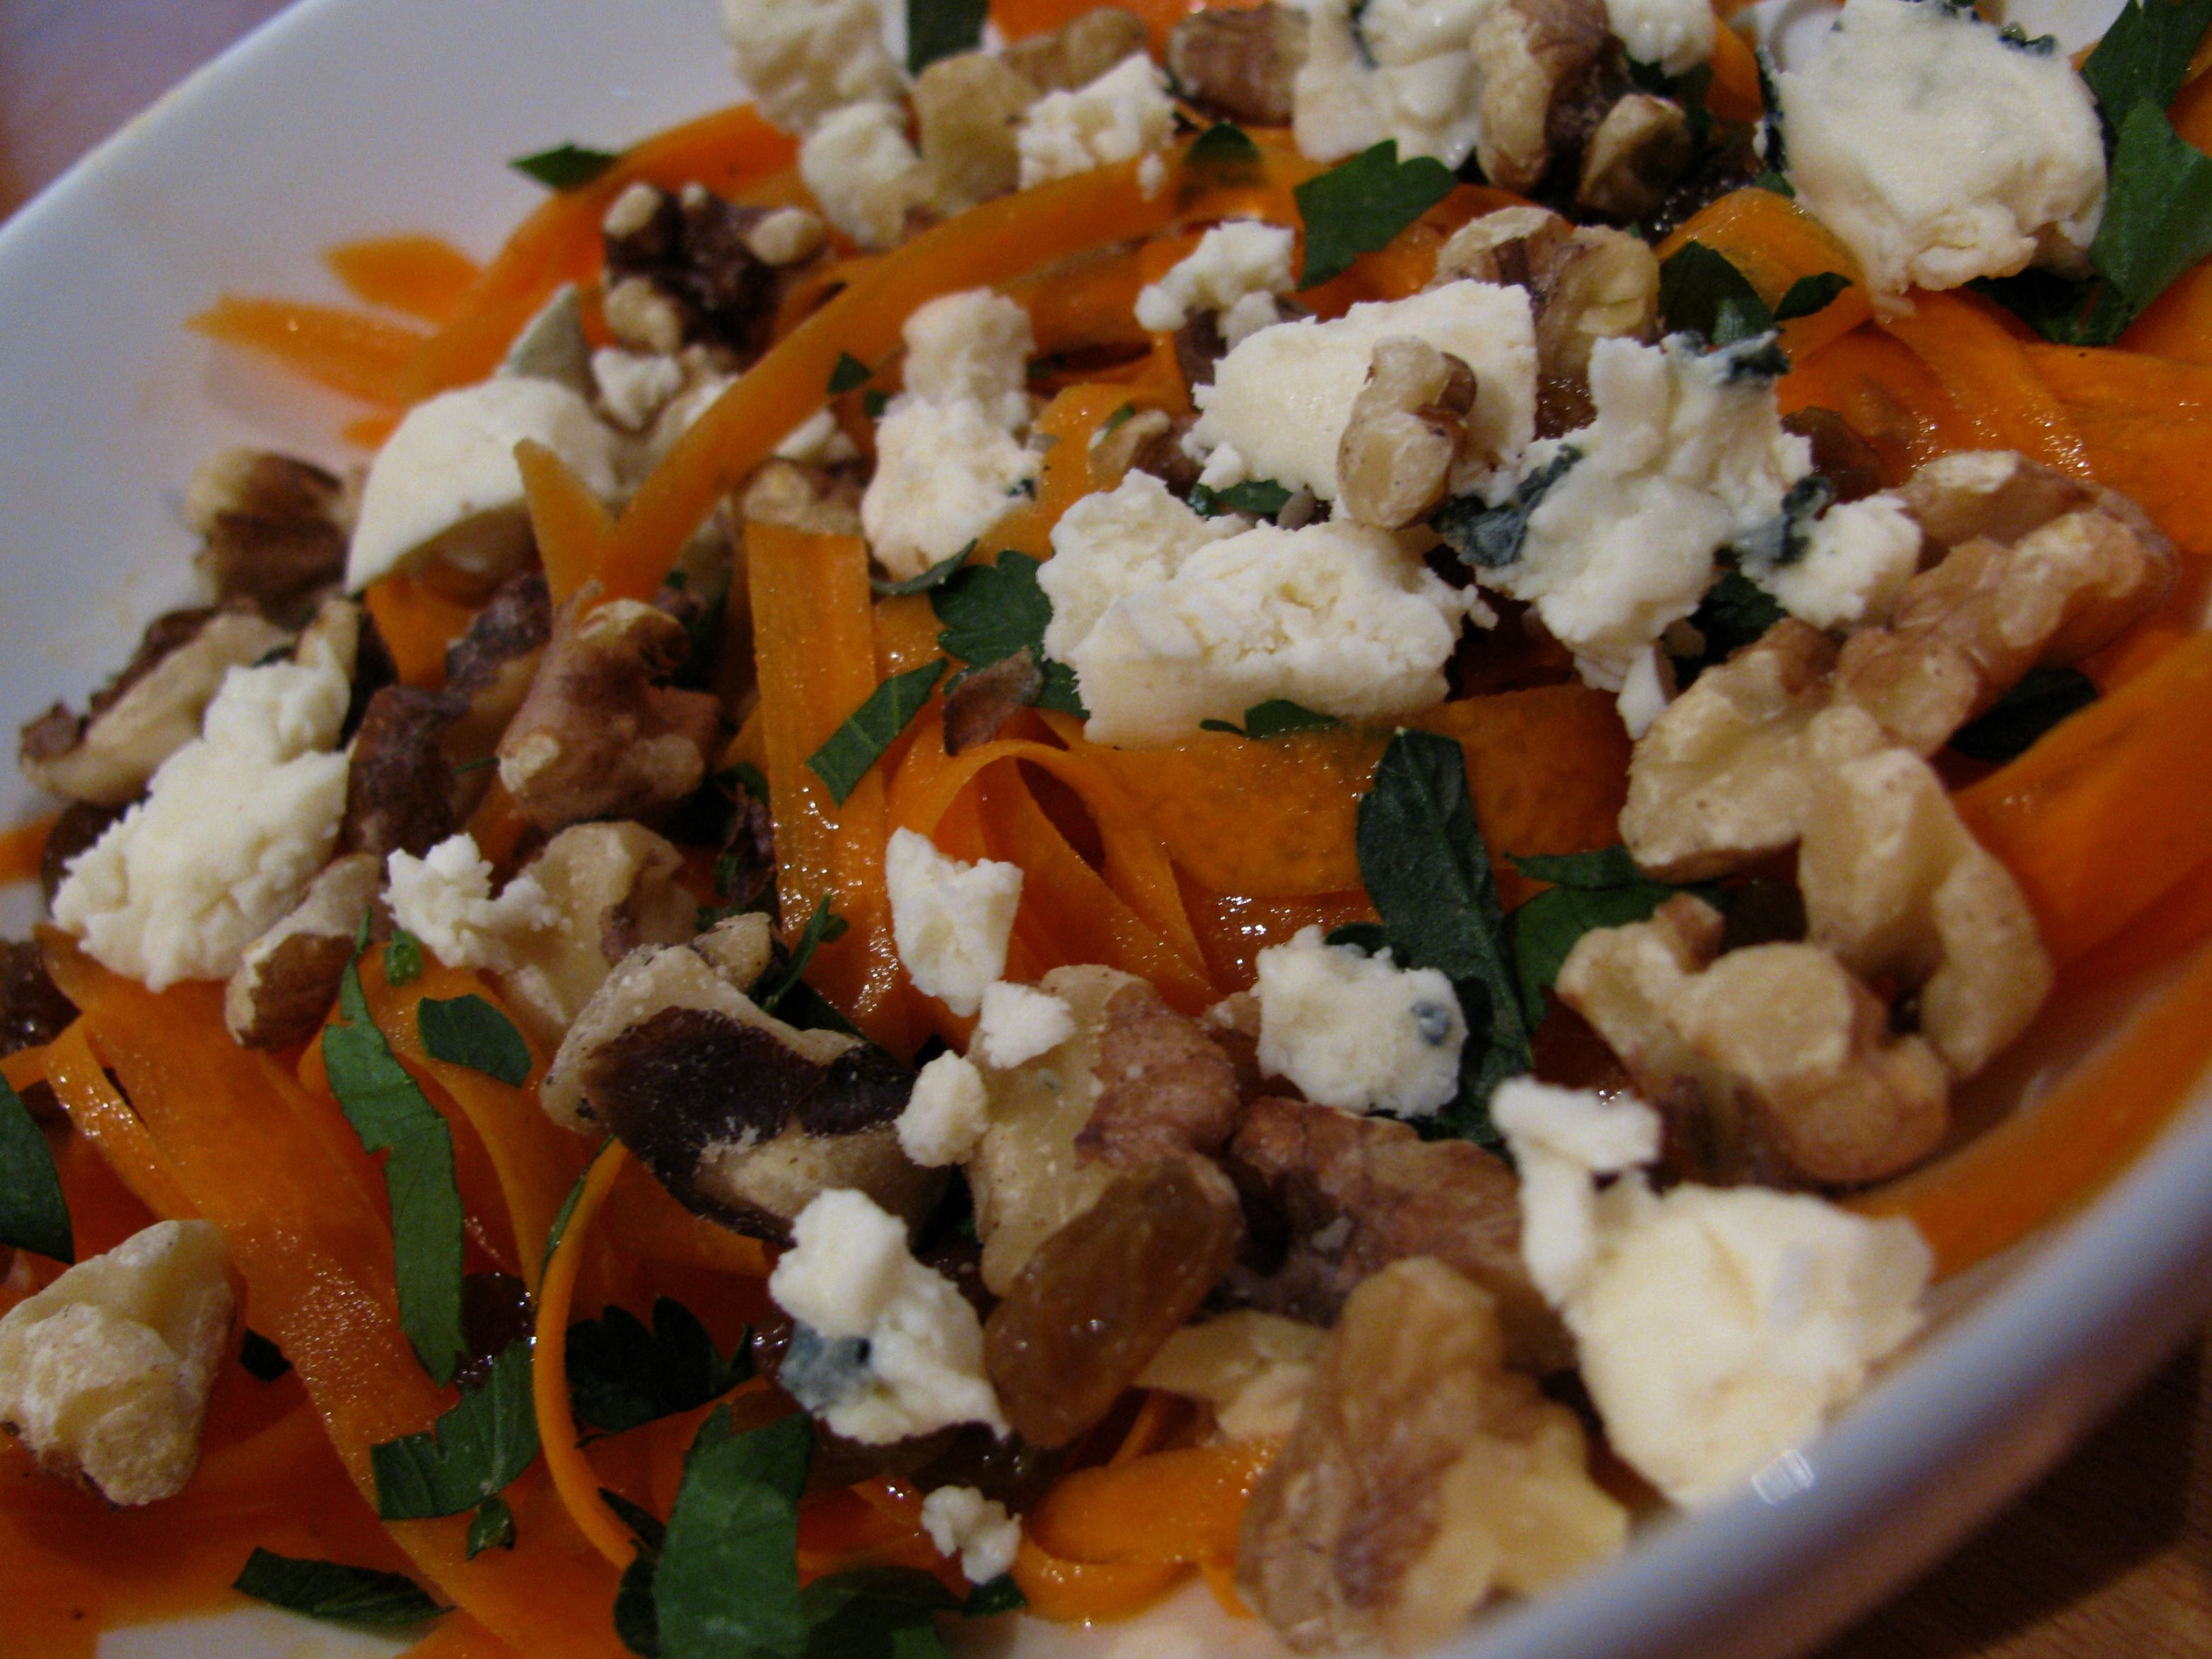 Carrot Raisin Salad with Walnuts and Blue Cheese.